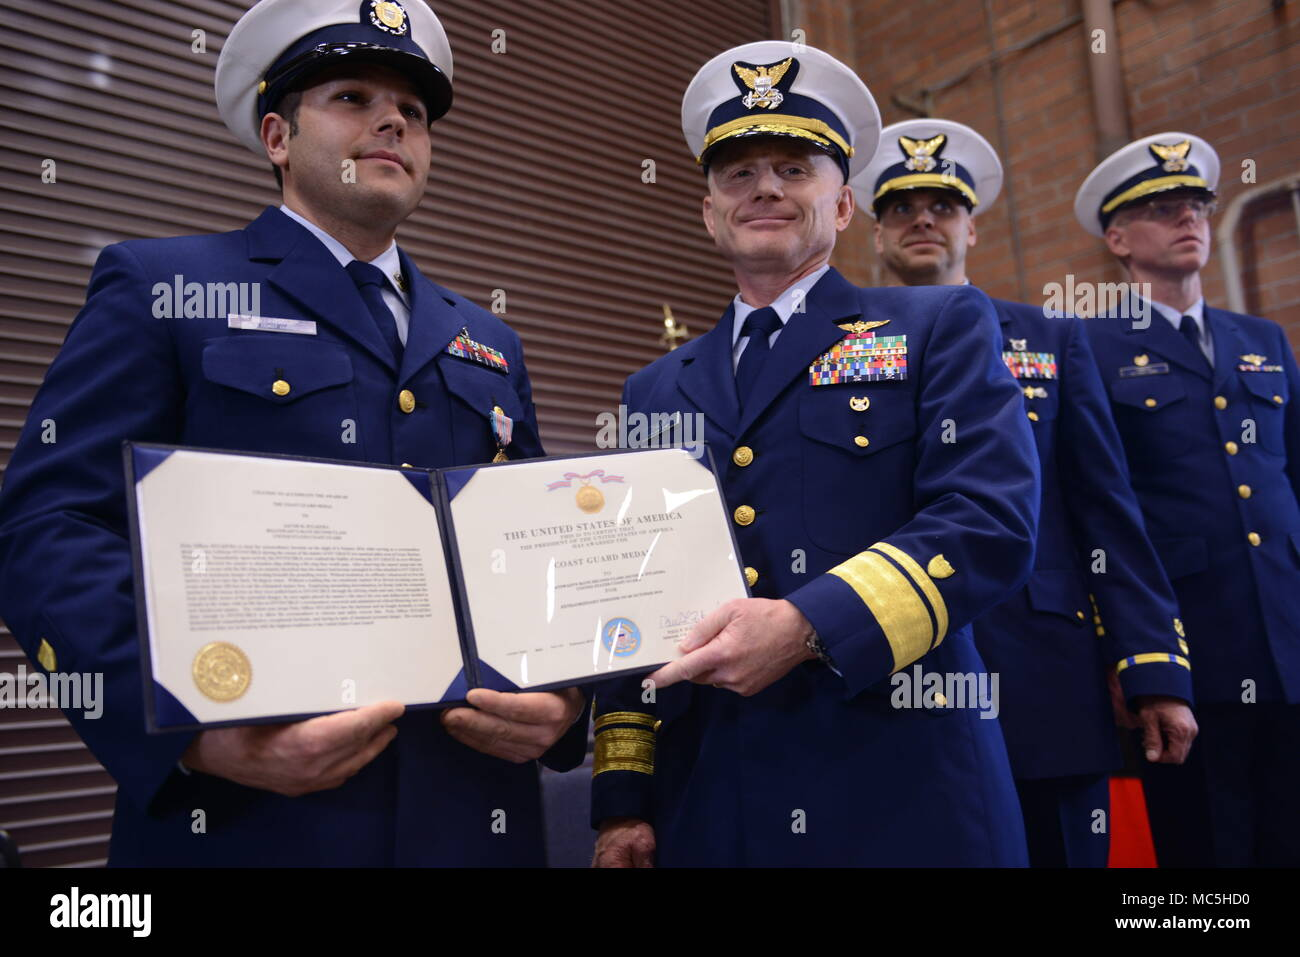 Rear Adm. David Throop, commander Coast Guard 13th District, presents the Coast Guard Medal to Petty Officer 1st Class Jacob Hylkema, a boatswain's mate at Coast Guard Station Grays Harbor, during a ceremony held at the station's base in Westport, Wash., April 6, 2018.    The Coast Guard Medal is the 3rd highest award that a Coast Guardsman can be awarded during peacetime.    U.S. Coast Guard photo by Petty Officer 1st Class Levi Read. - Stock Image